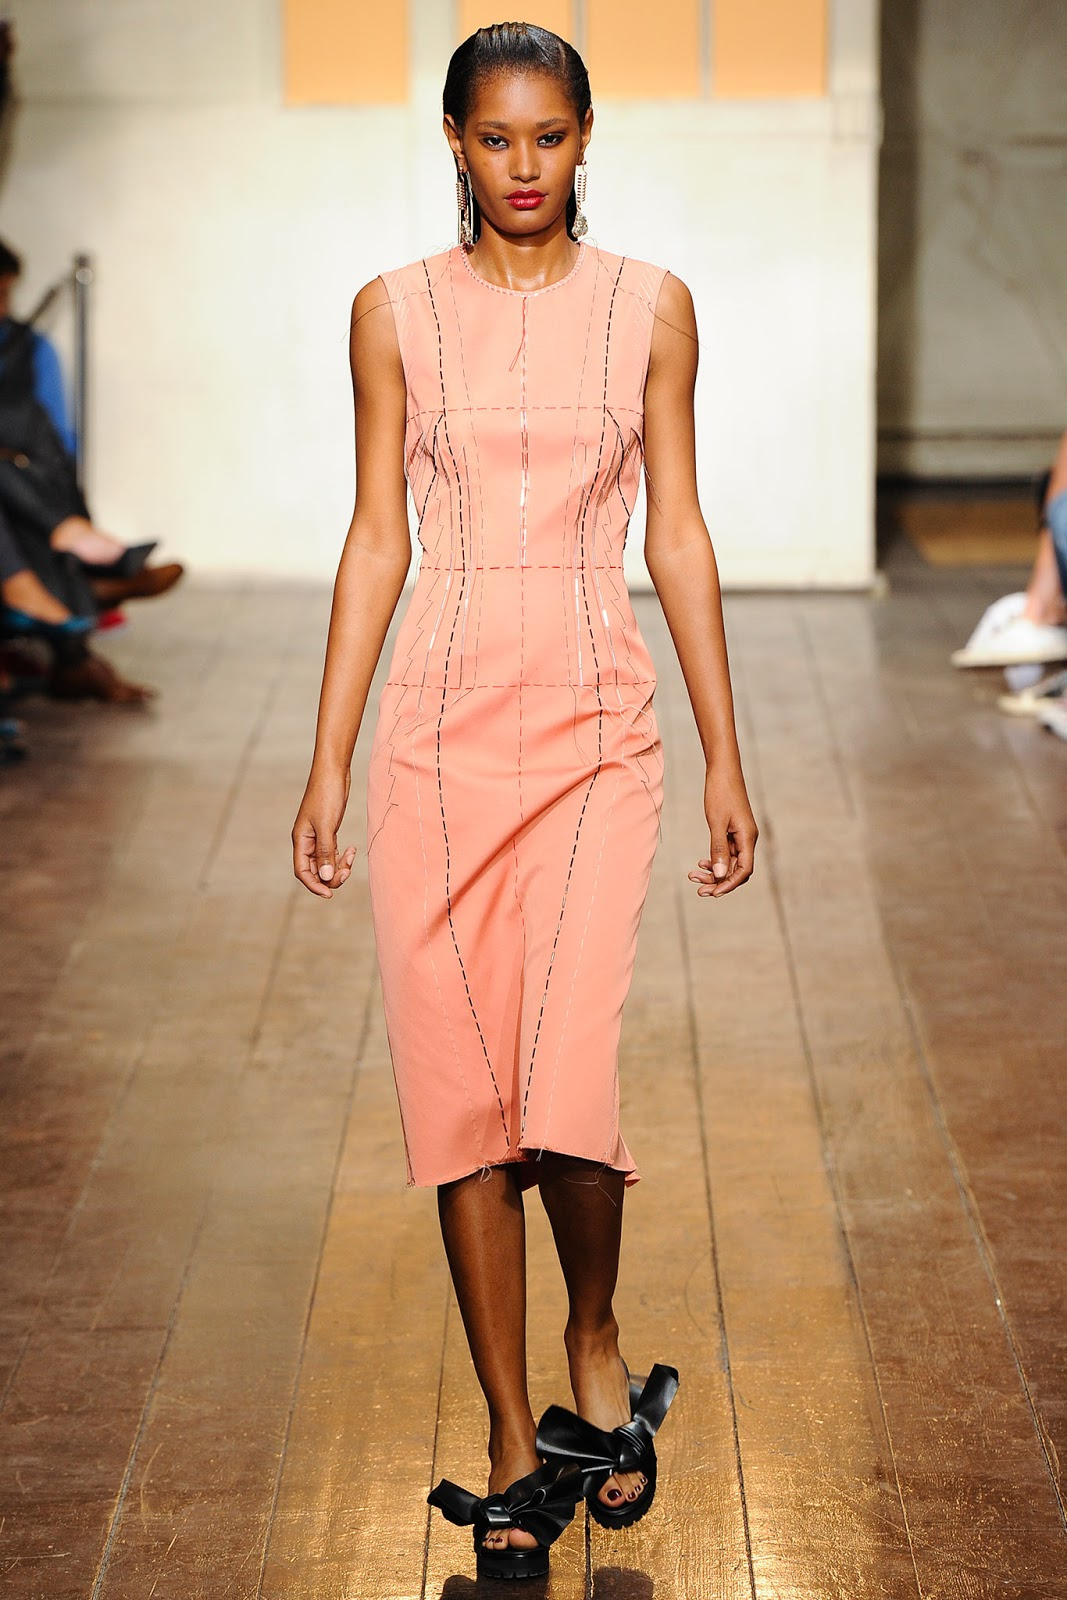 Pantone colour trend report 2015 / strawberry ice on a runway at Cedric Charlier Spring/Summer 2015 via fashioned by love brutish fashion blog